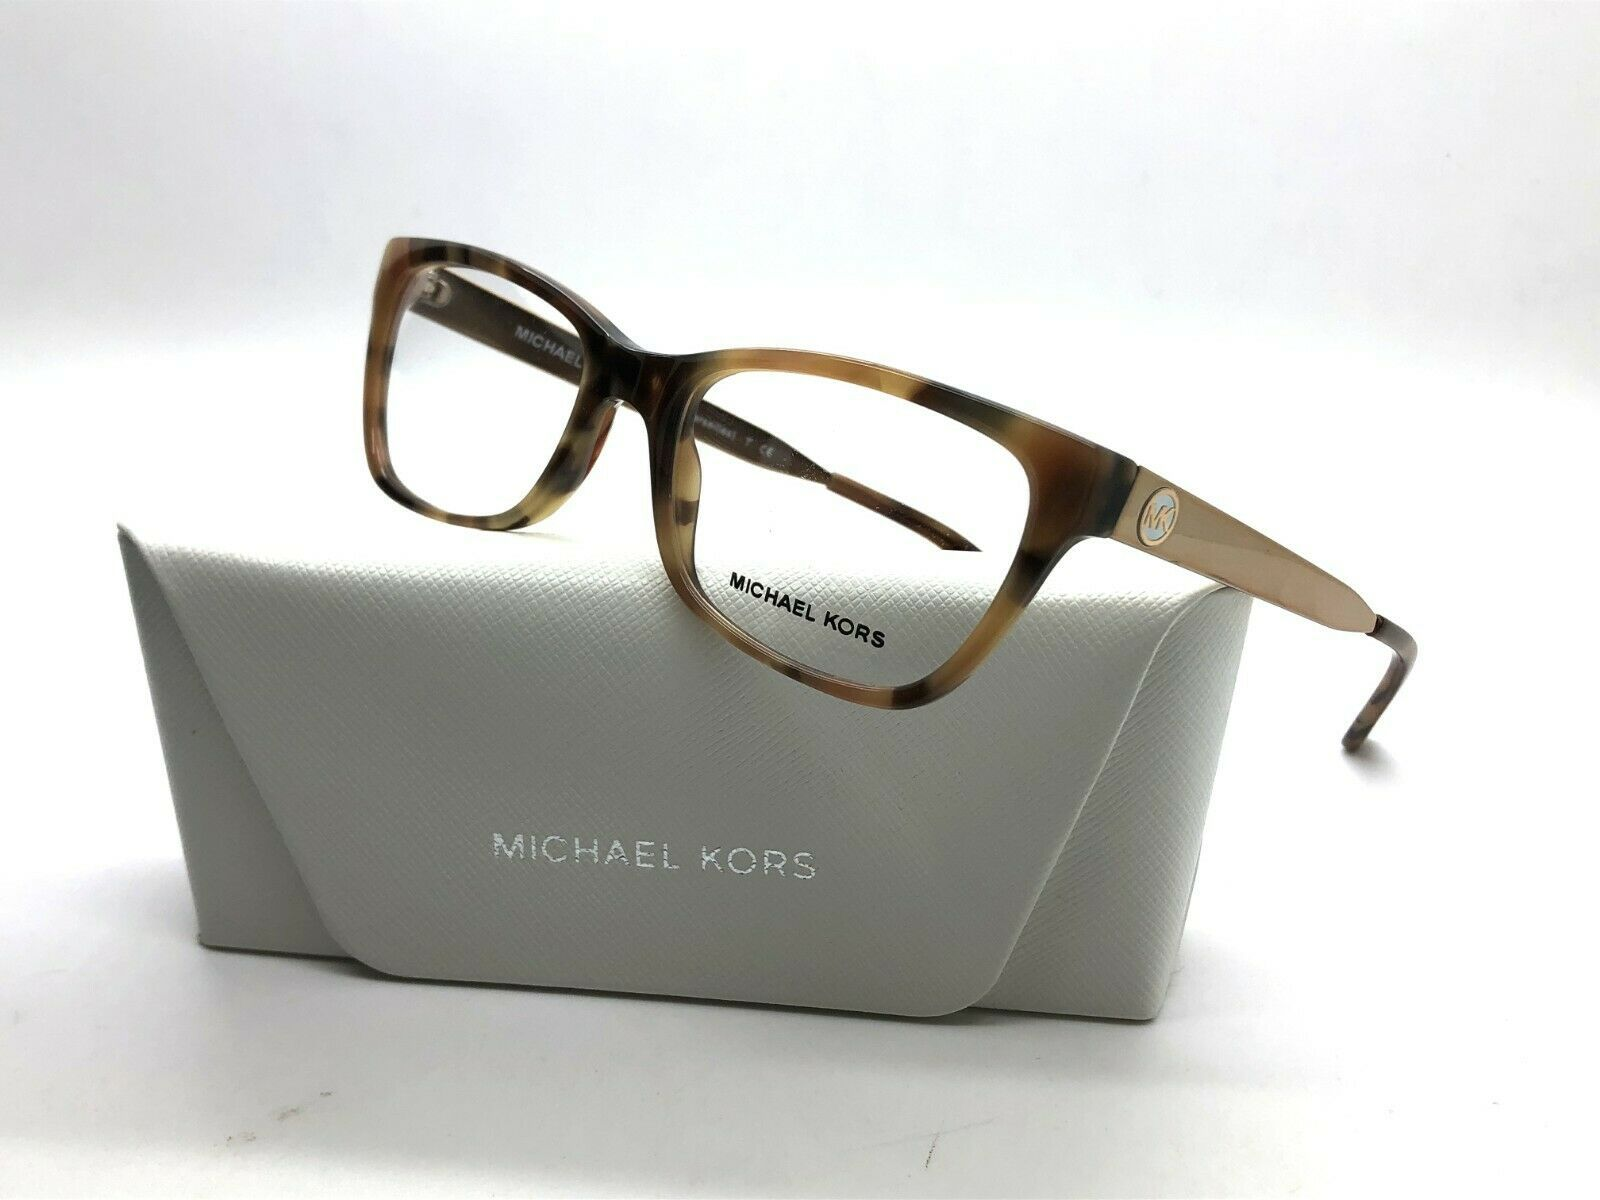 NEW MICHAEL KORS MK 4050 3311 GOLD / HAVANA AUTHENTIC EYEGLASSES FRAME 51-17